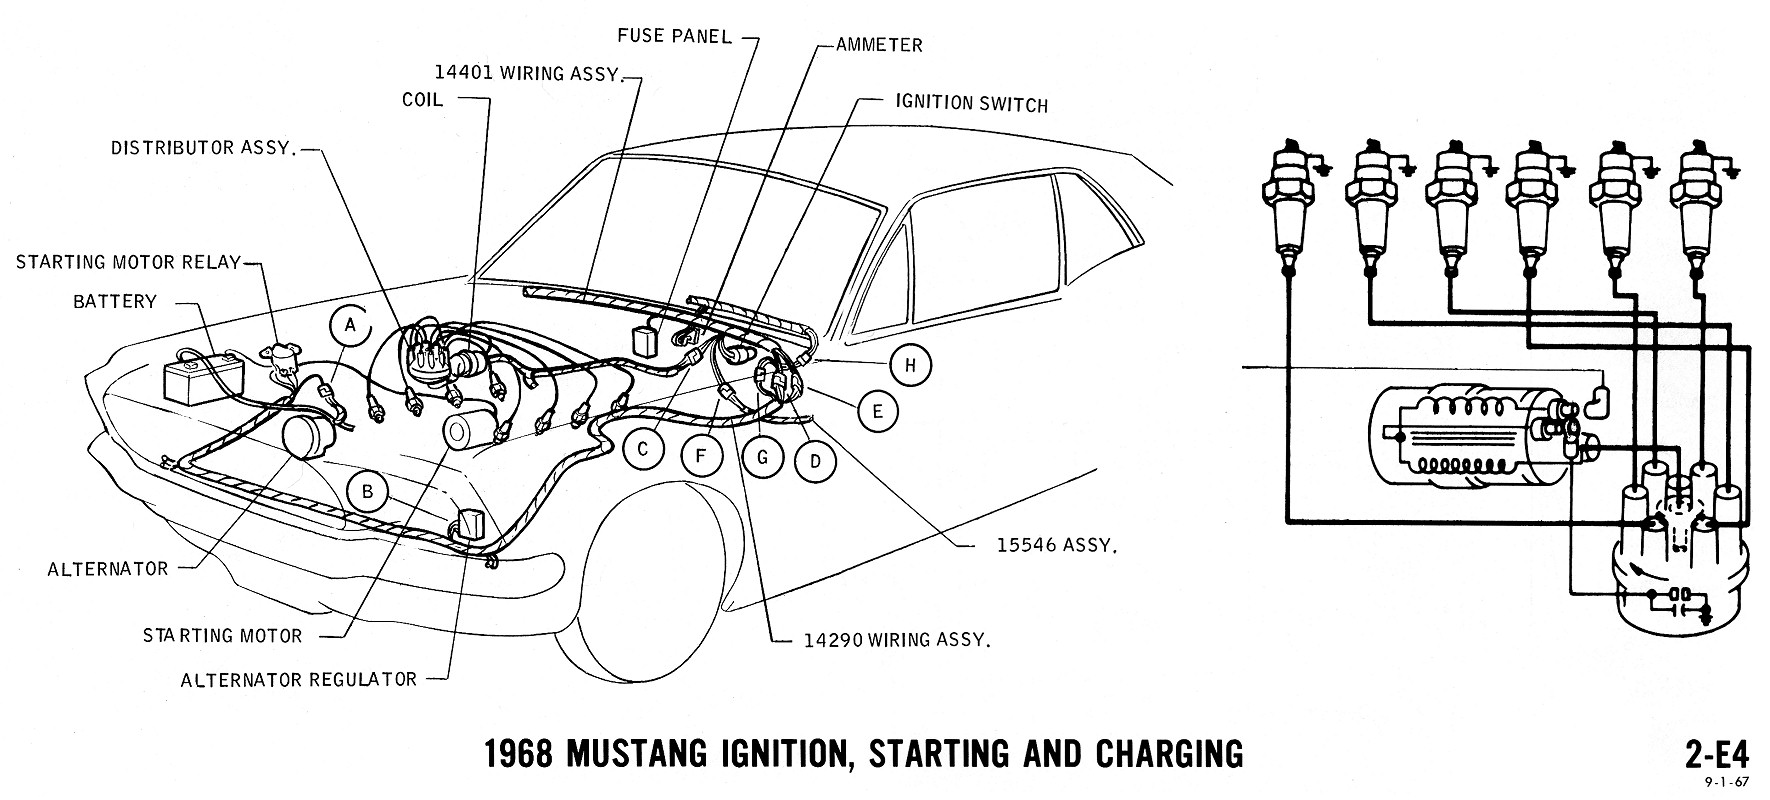 1968 mustang wiring diagram ignition starting charging 2 1968 mustang wiring diagrams and vacuum schematics average joe 1965 ford mustang wiring diagrams at mifinder.co